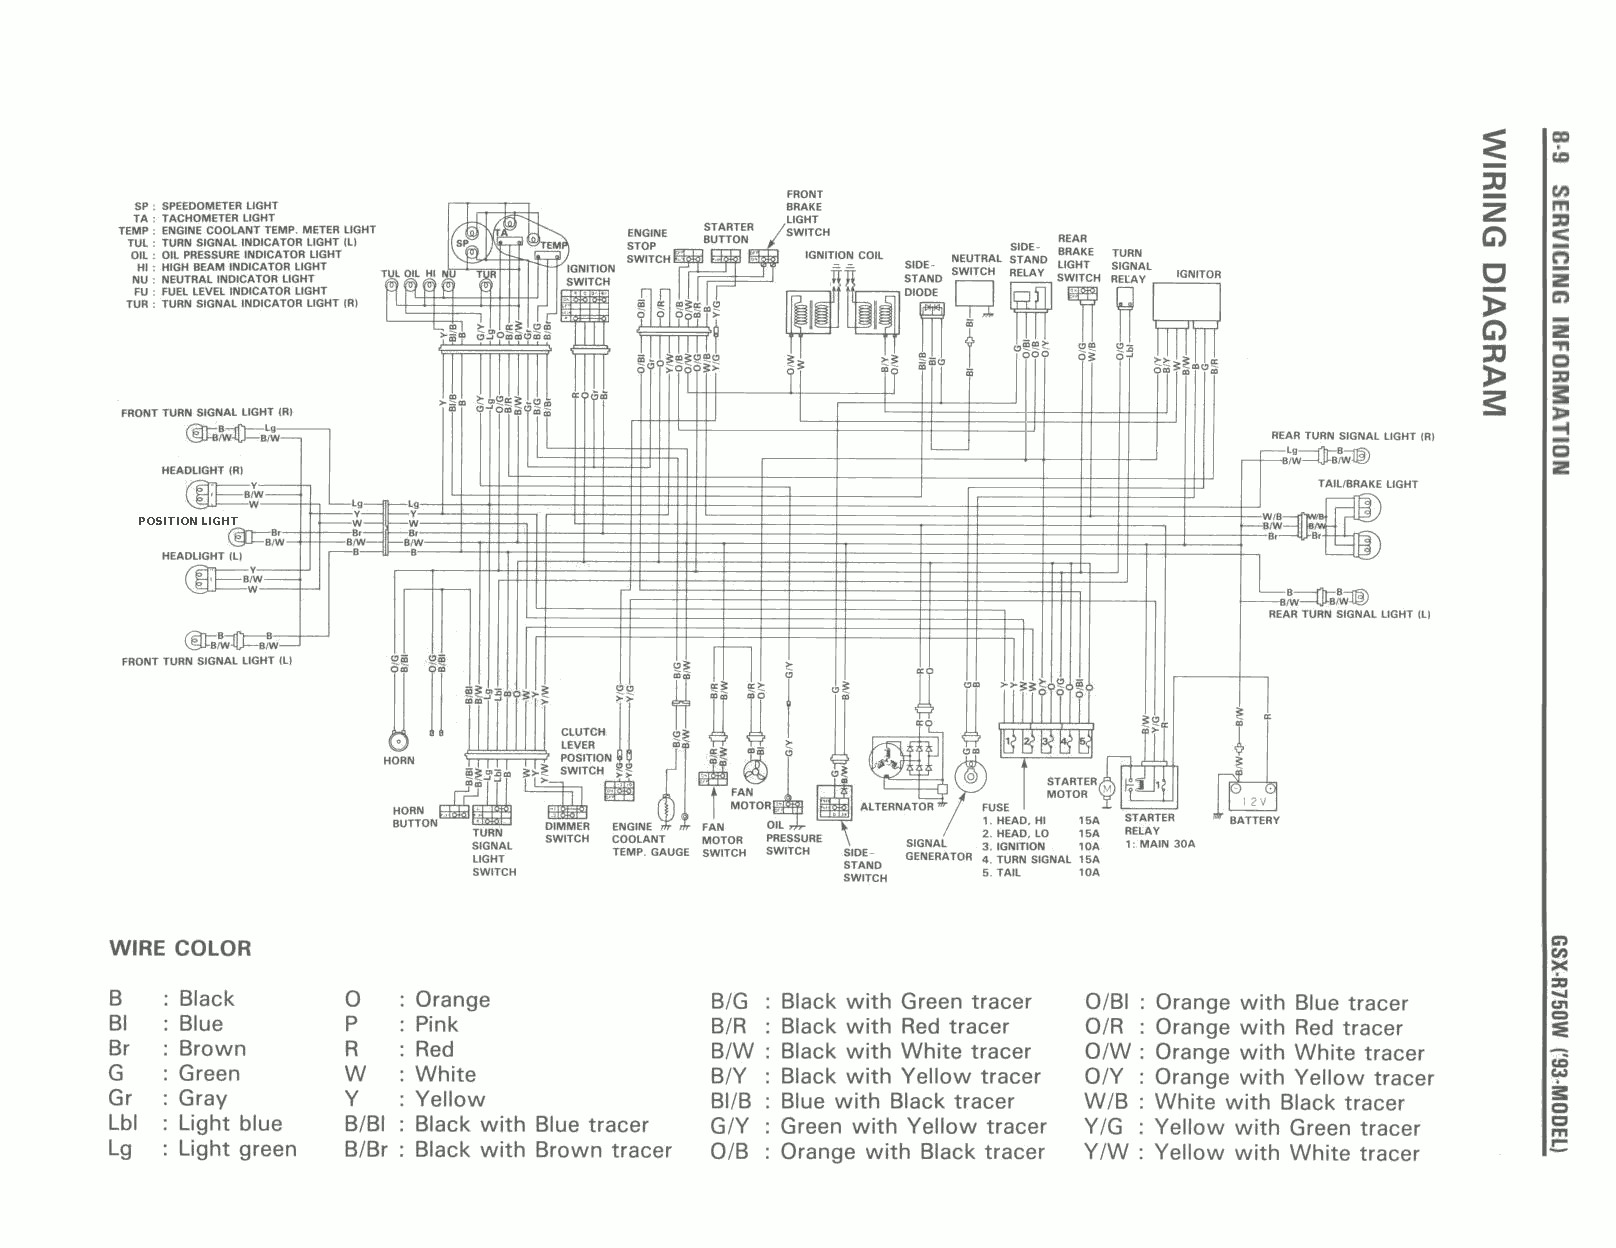 Wonderful Suzuki K15 Wiring Diagram Pictures - Best Image Wire ... on transformer diagrams, troubleshooting diagrams, engine diagrams, smart car diagrams, gmc fuse box diagrams, motor diagrams, led circuit diagrams, friendship bracelet diagrams, electrical diagrams, electronic circuit diagrams, honda motorcycle repair diagrams, internet of things diagrams, pinout diagrams, lighting diagrams, hvac diagrams, series and parallel circuits diagrams, snatch block diagrams, battery diagrams, sincgars radio configurations diagrams, switch diagrams,